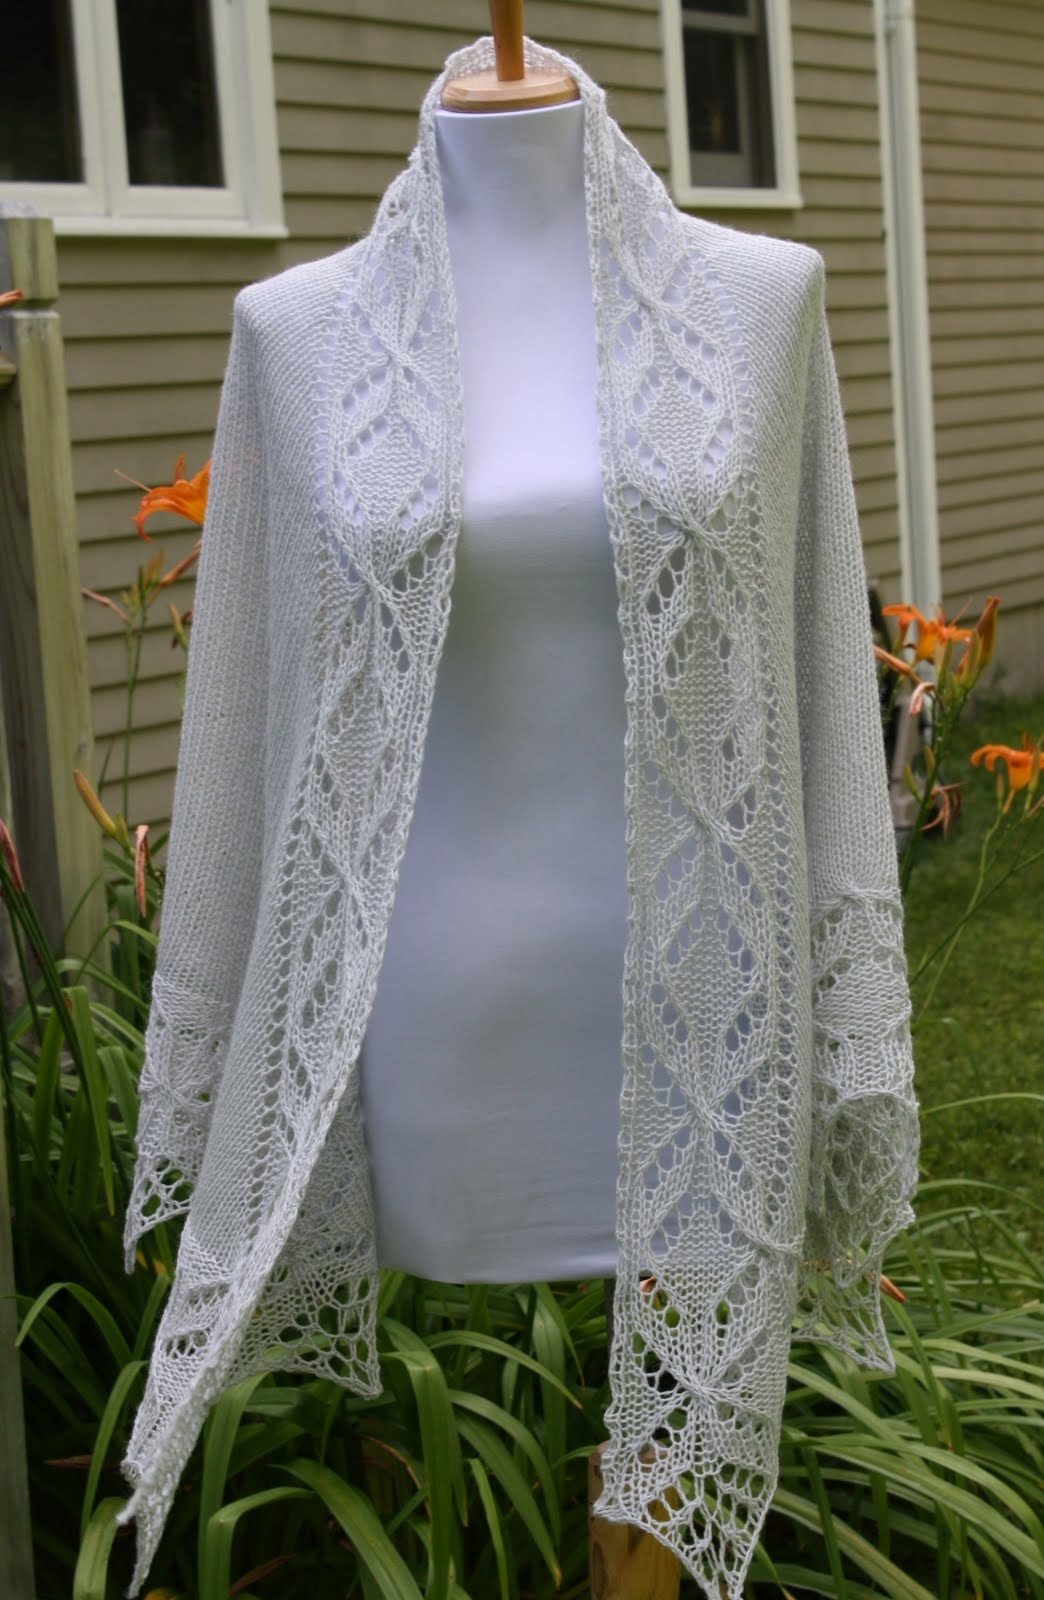 All Knitted Lace: I have been working on new patterns